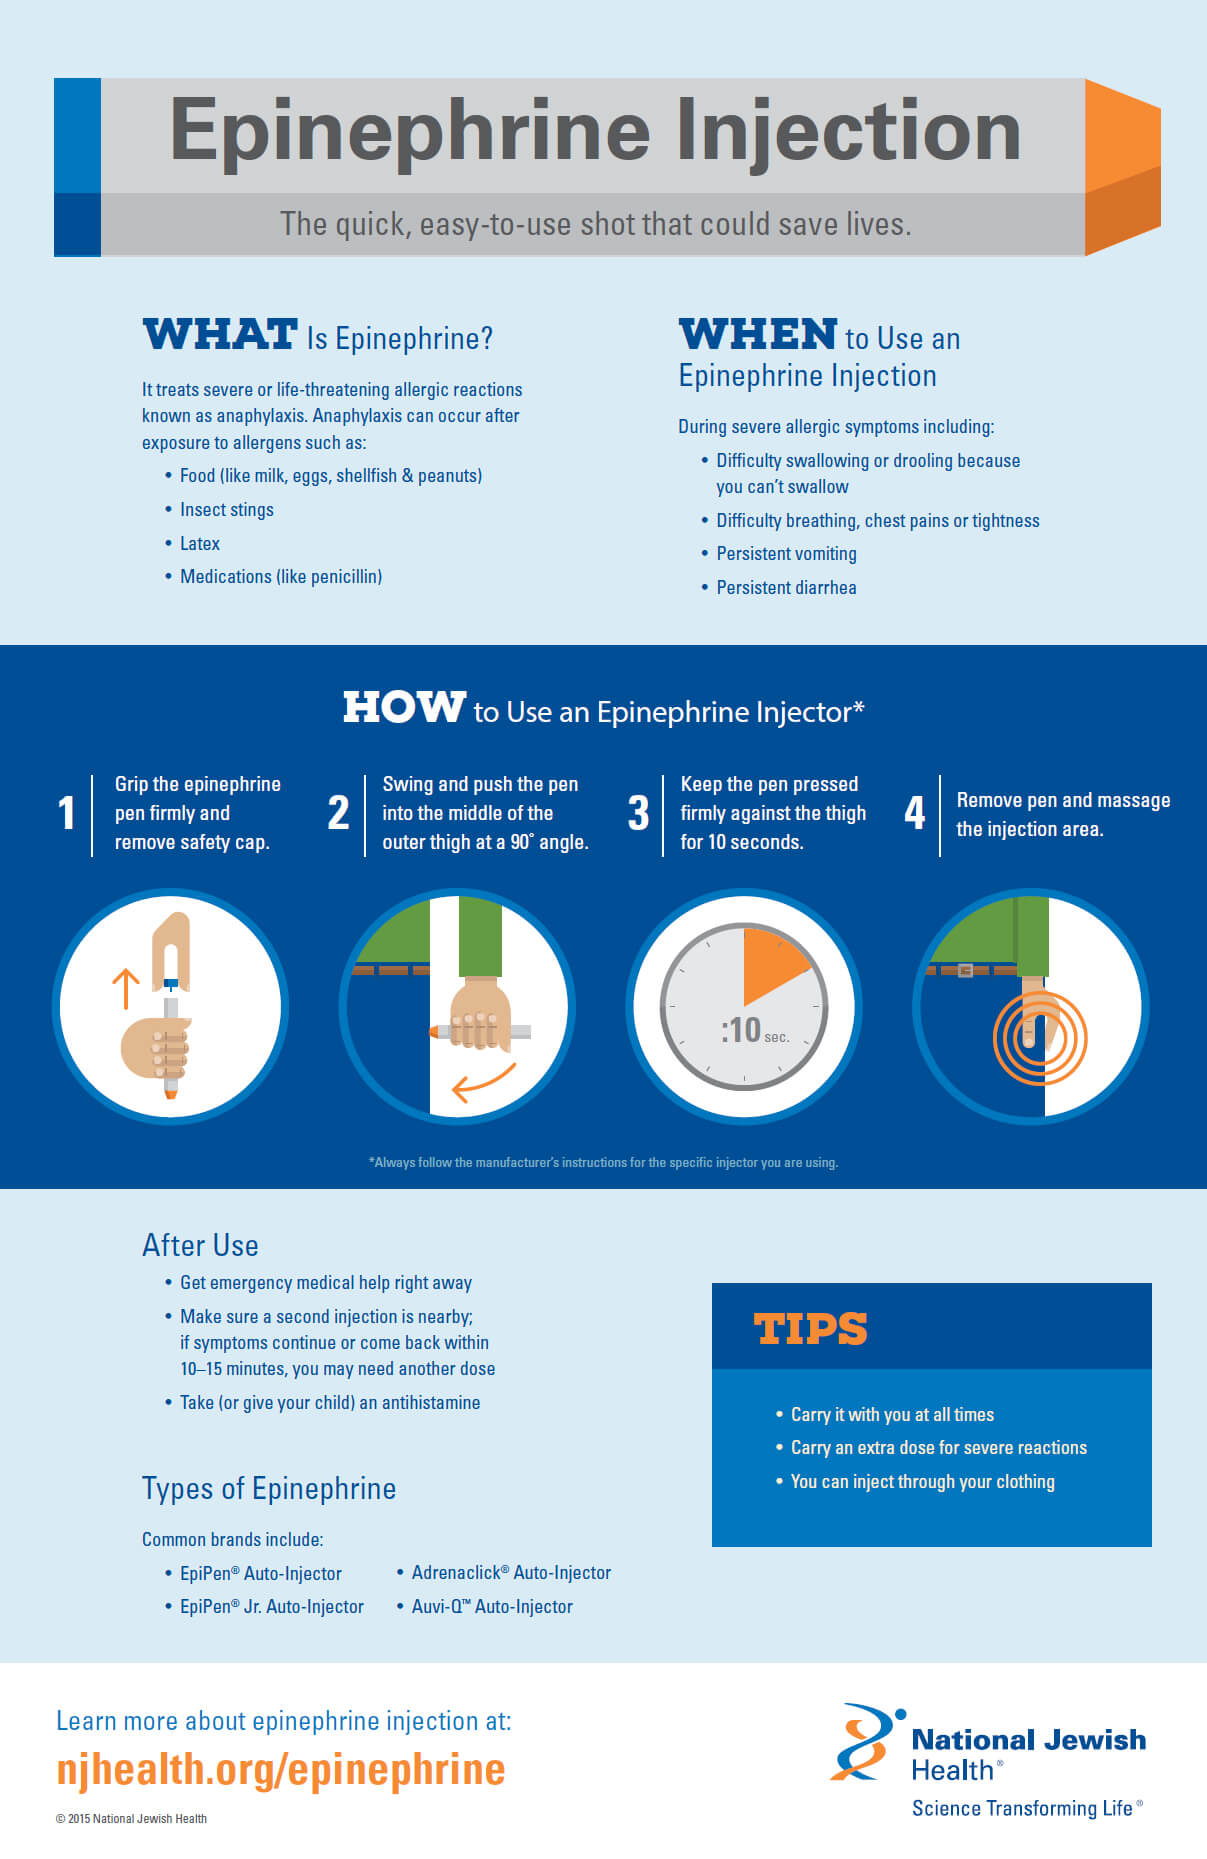 hight resolution of epinephrine injection infographic the quick shot that could save lives